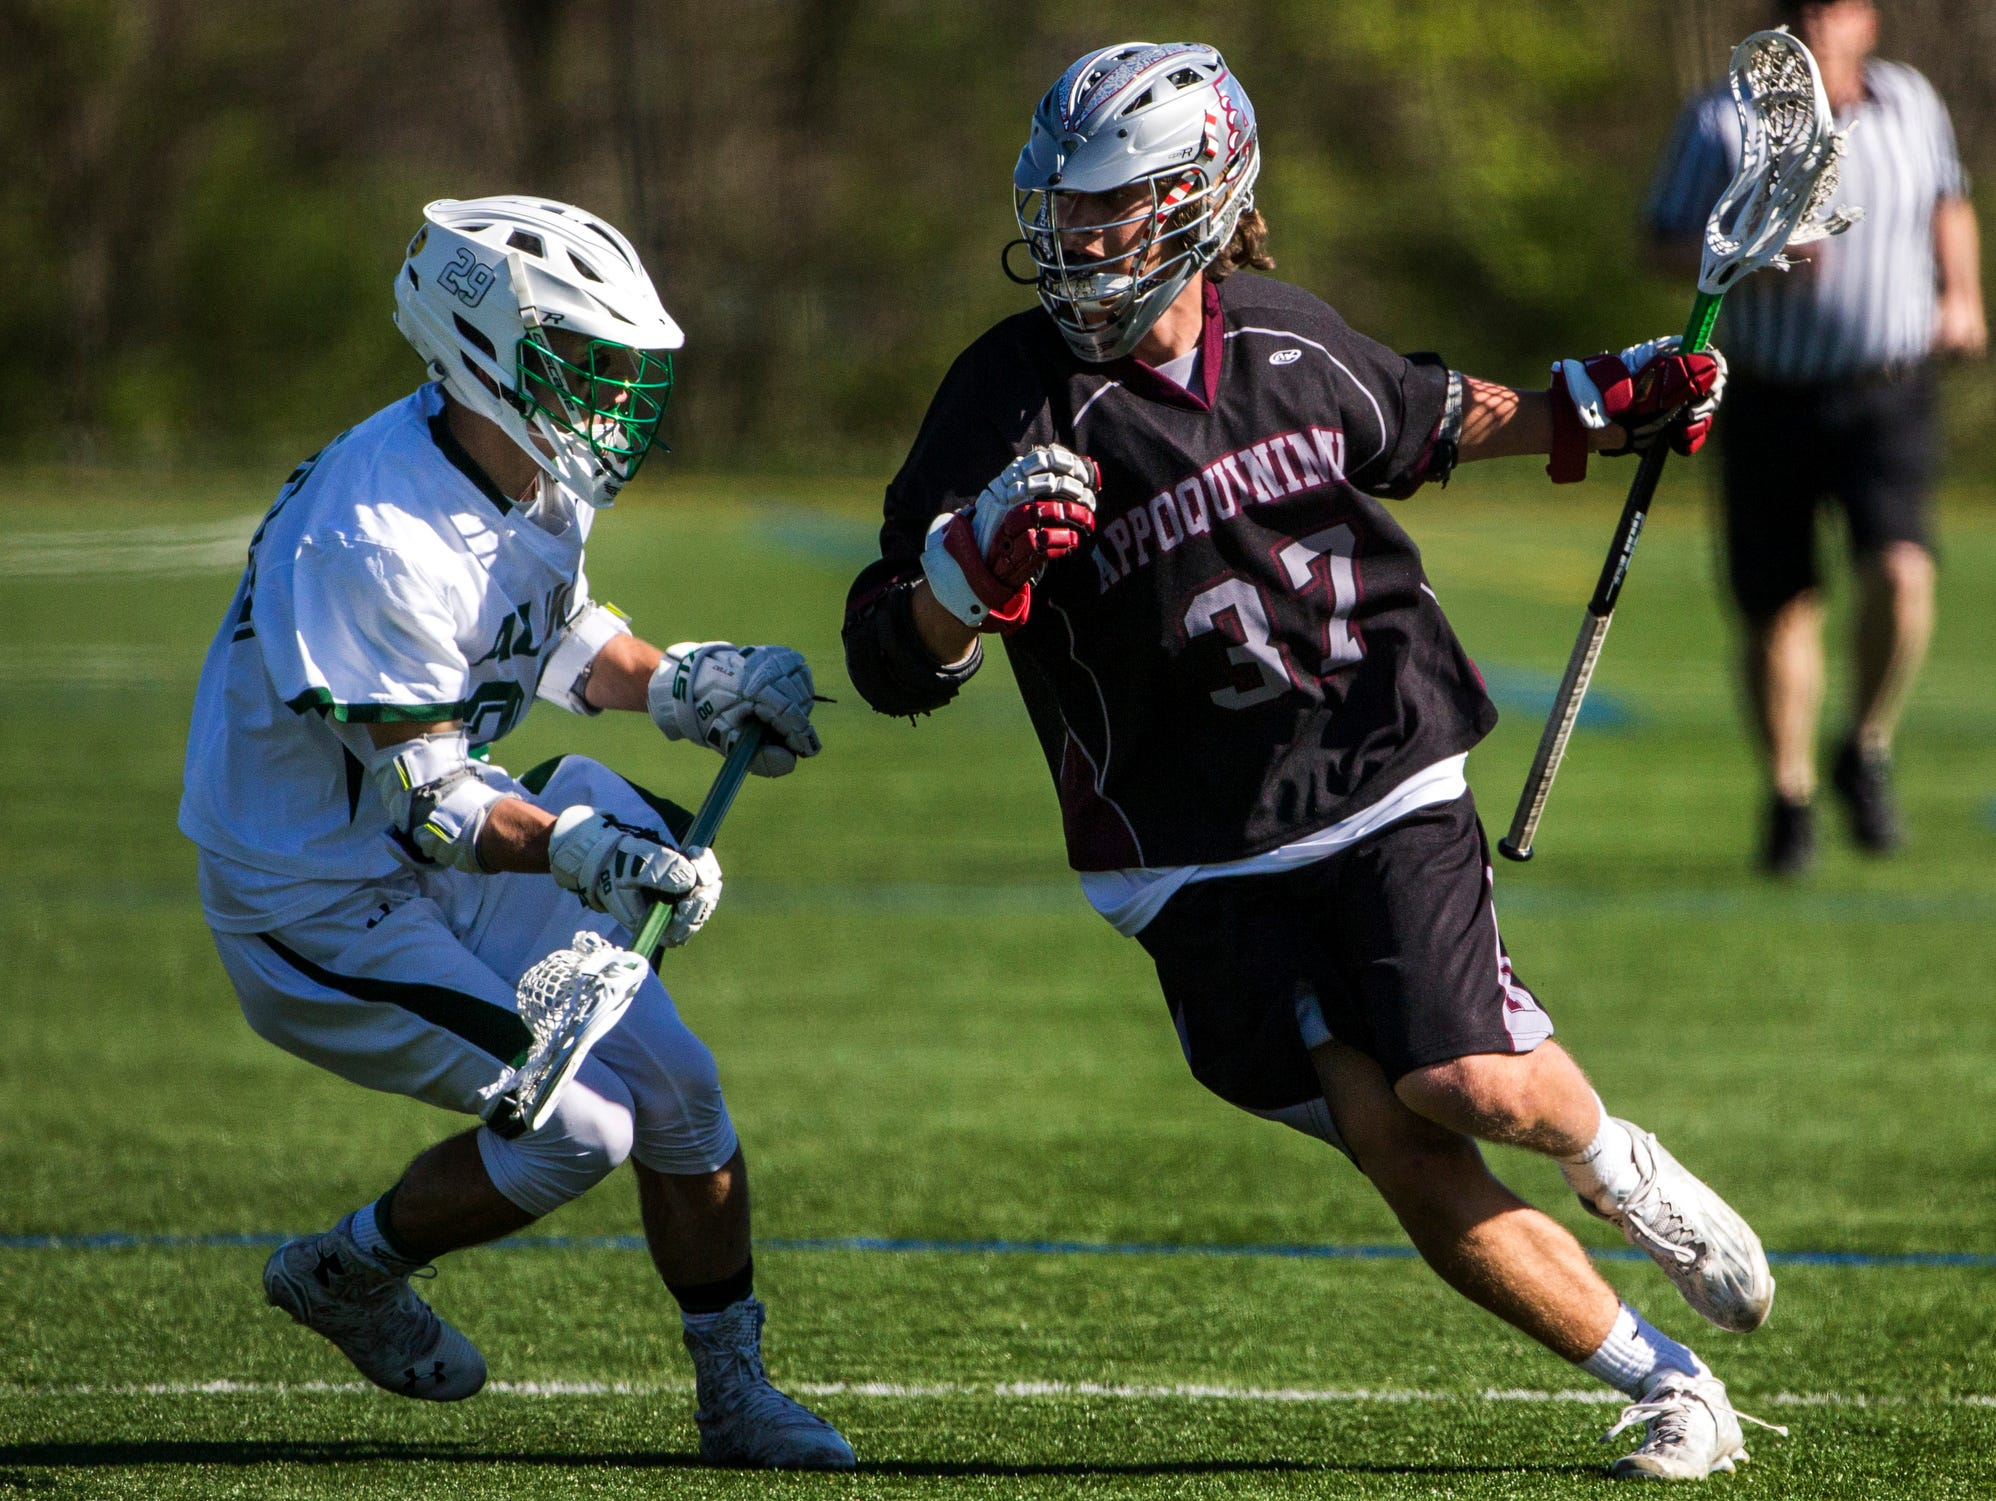 Appoquinimink's John Dunbar (right) works against Archmere's David Dewees (left) in the first quarter of Appoquinimink's 13-12 win over Archmere at Archmere Academy on Wednesday afternoon.